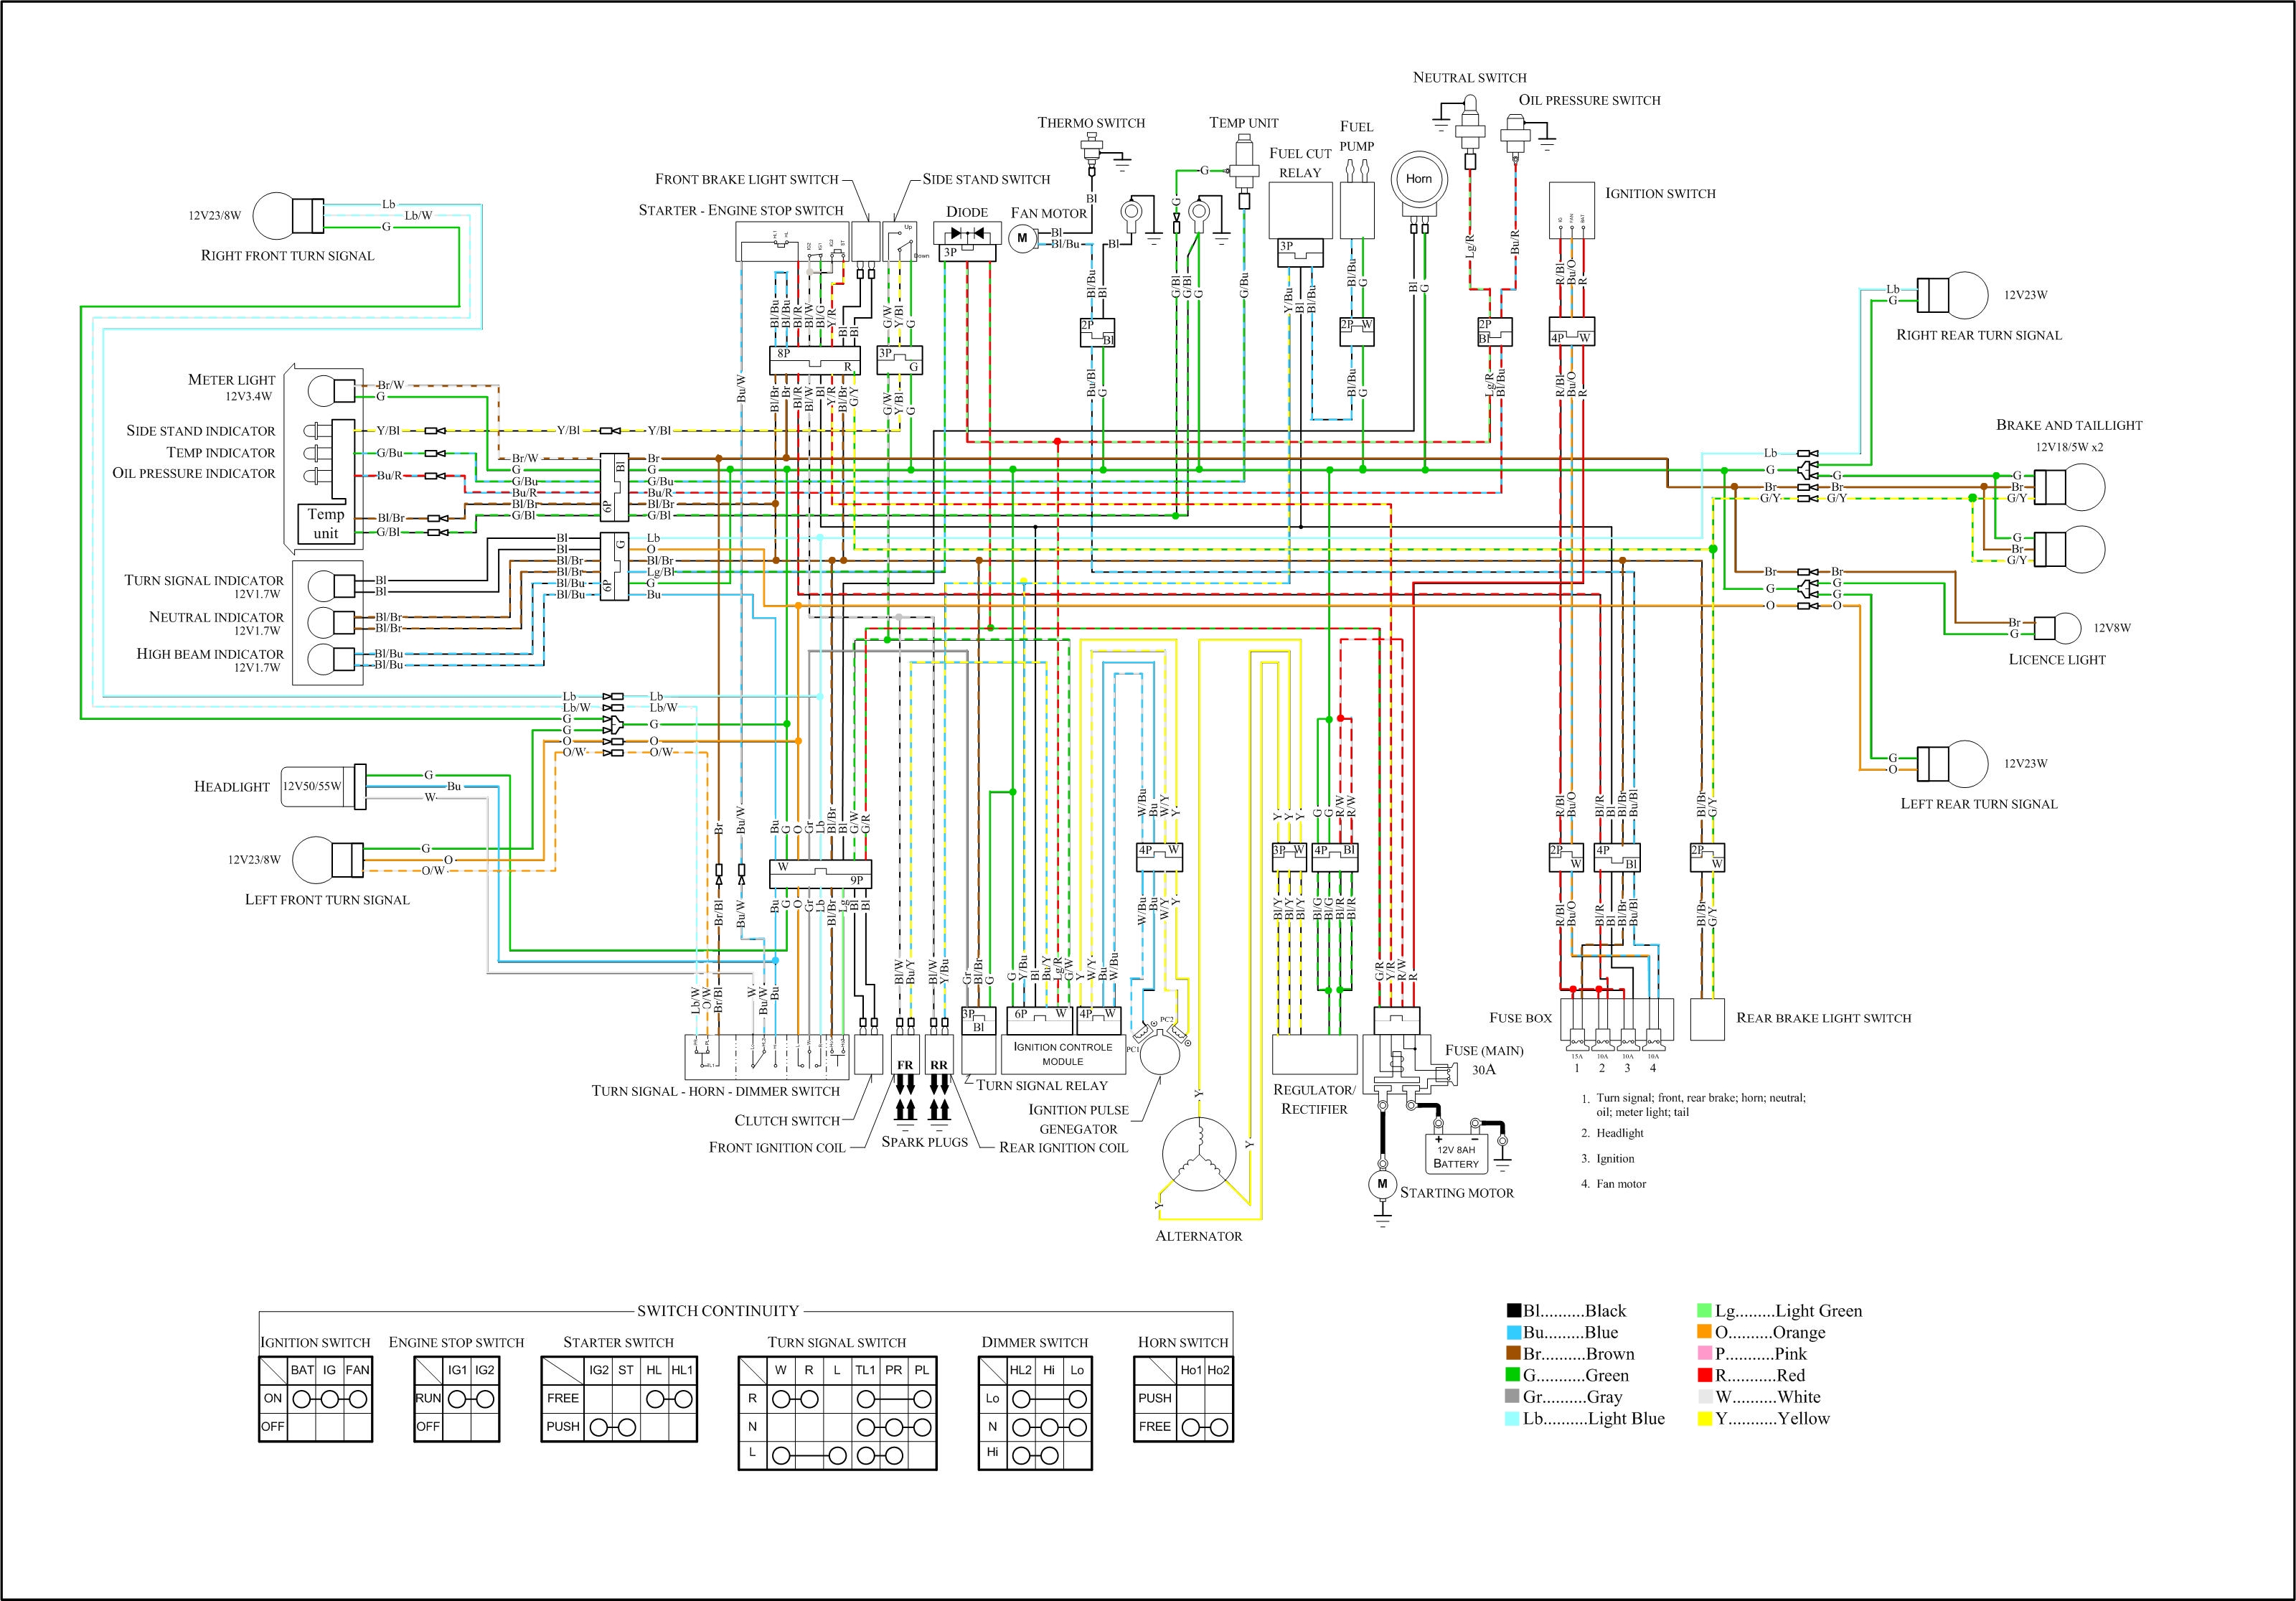 Motorcycle Wiring Diagrams on bike assembly diagram, bike battery diagram, bike pump diagram, bike accessories diagram, bike dimensions diagram, bike drive shaft, bike exhaust diagram, bike brakes, bike components diagram, bike bmw, bike bracket diagram, bike maintenance, bike radio, bike tools diagram, bike horn, bike clutch diagram, bike frame diagram, bike parts diagram, bike valve, bike engineering diagram,